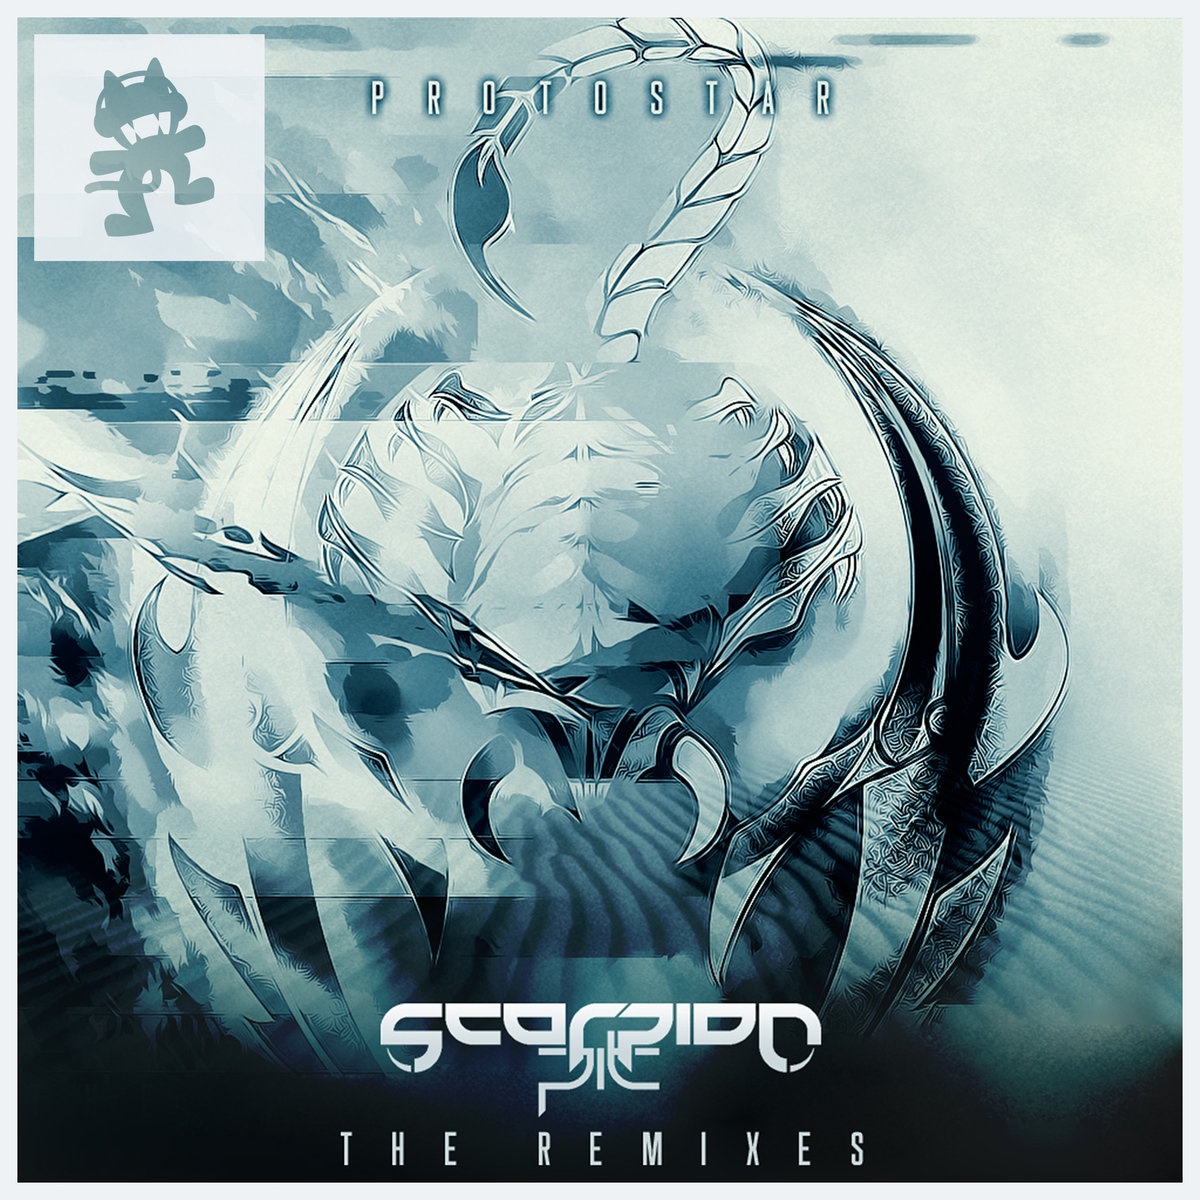 Scorpion Pit (The Remixes)